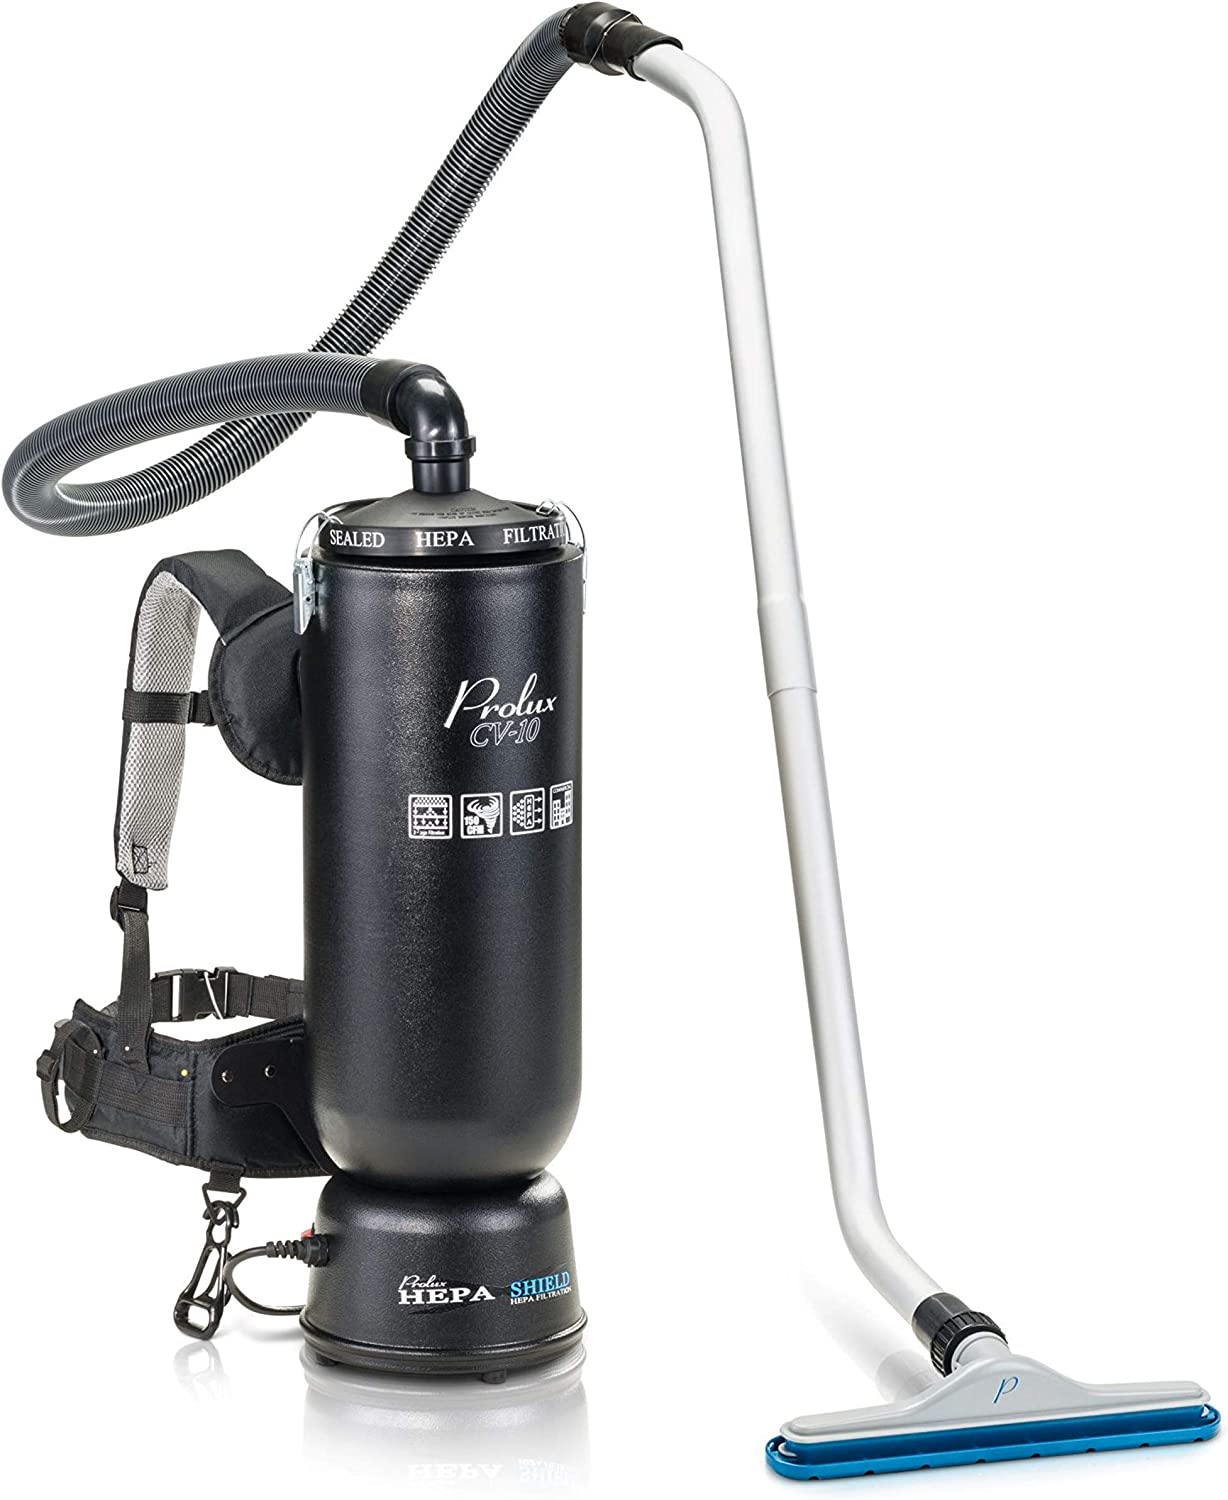 Prolux 10 Quart Commercial Backpack Vacuum with 2 Year Warranty